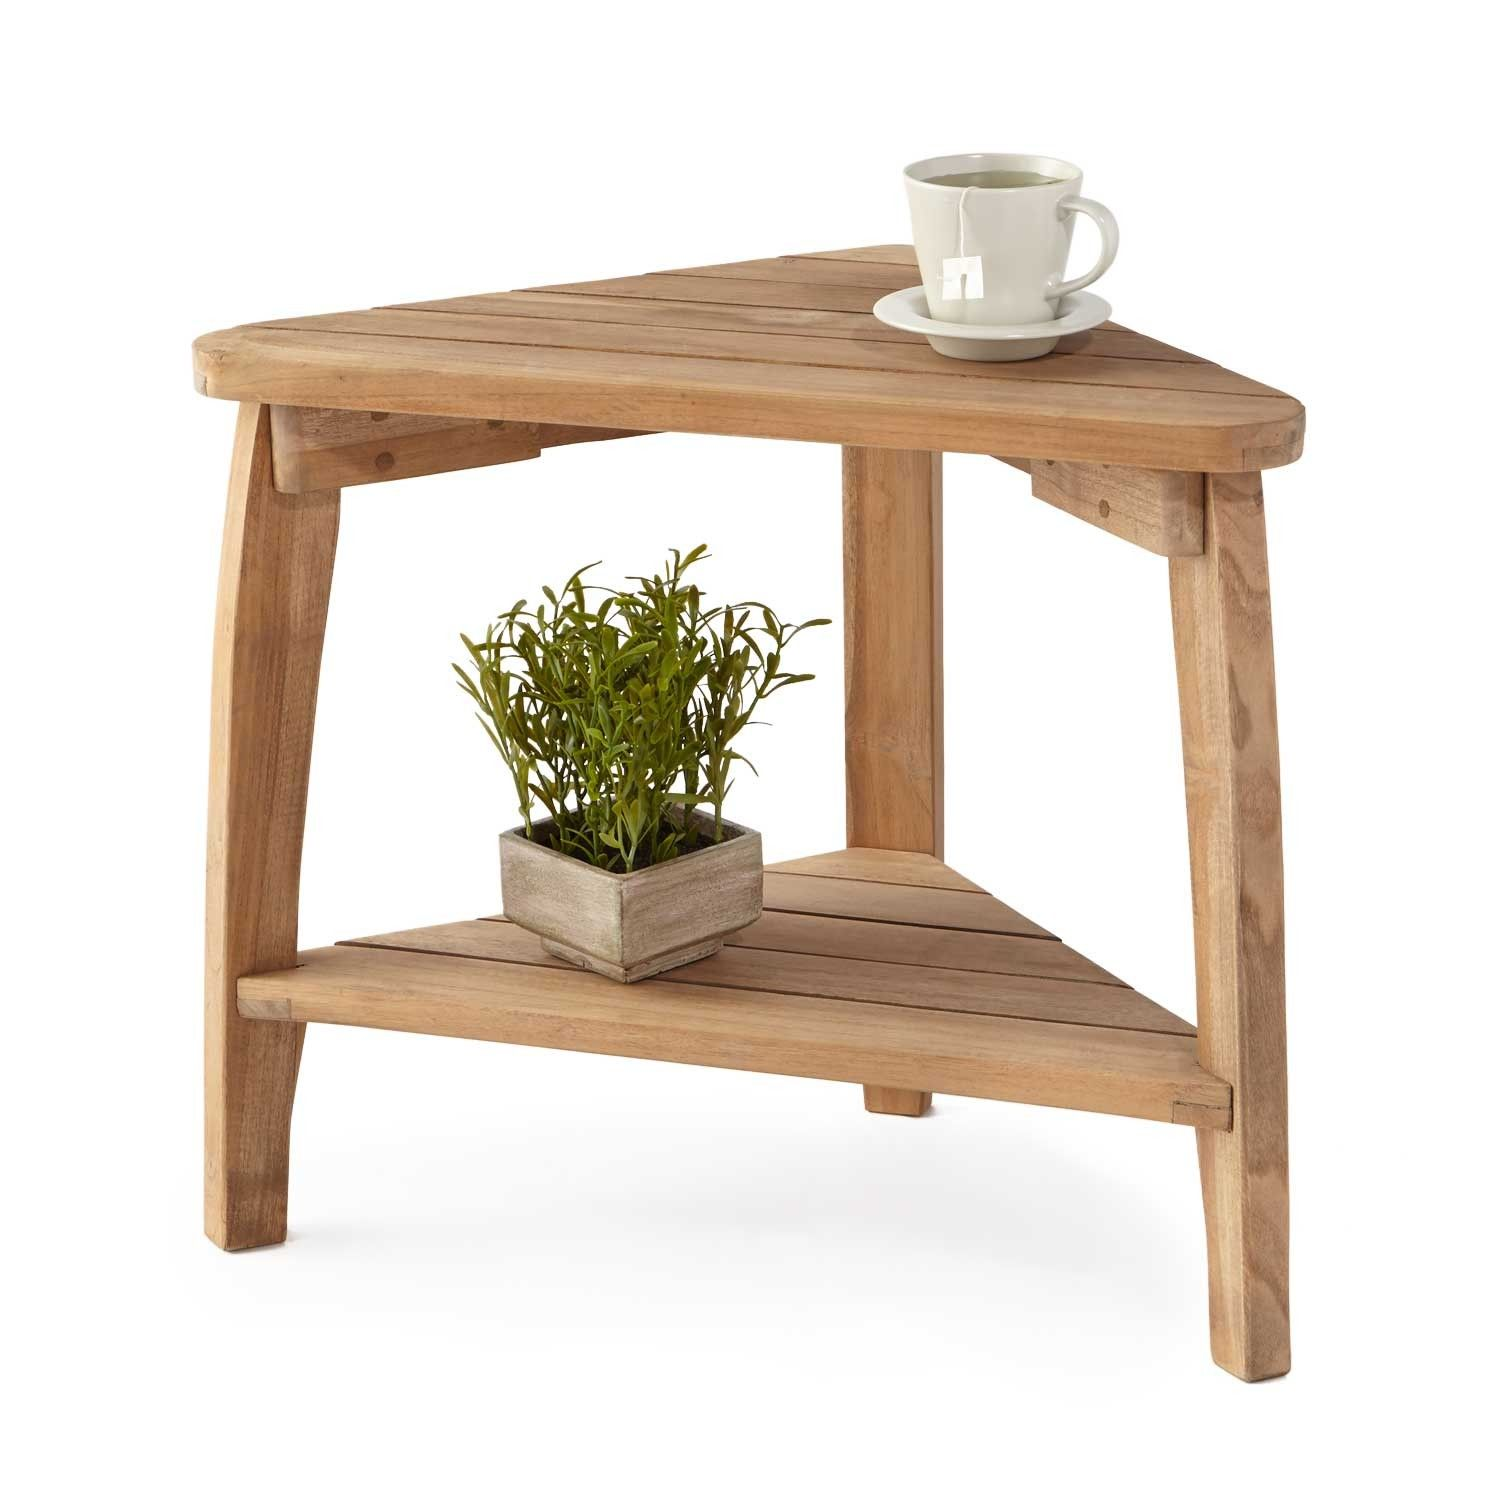 Terrel teak outdoor corner table corner table teak and Corner bench table